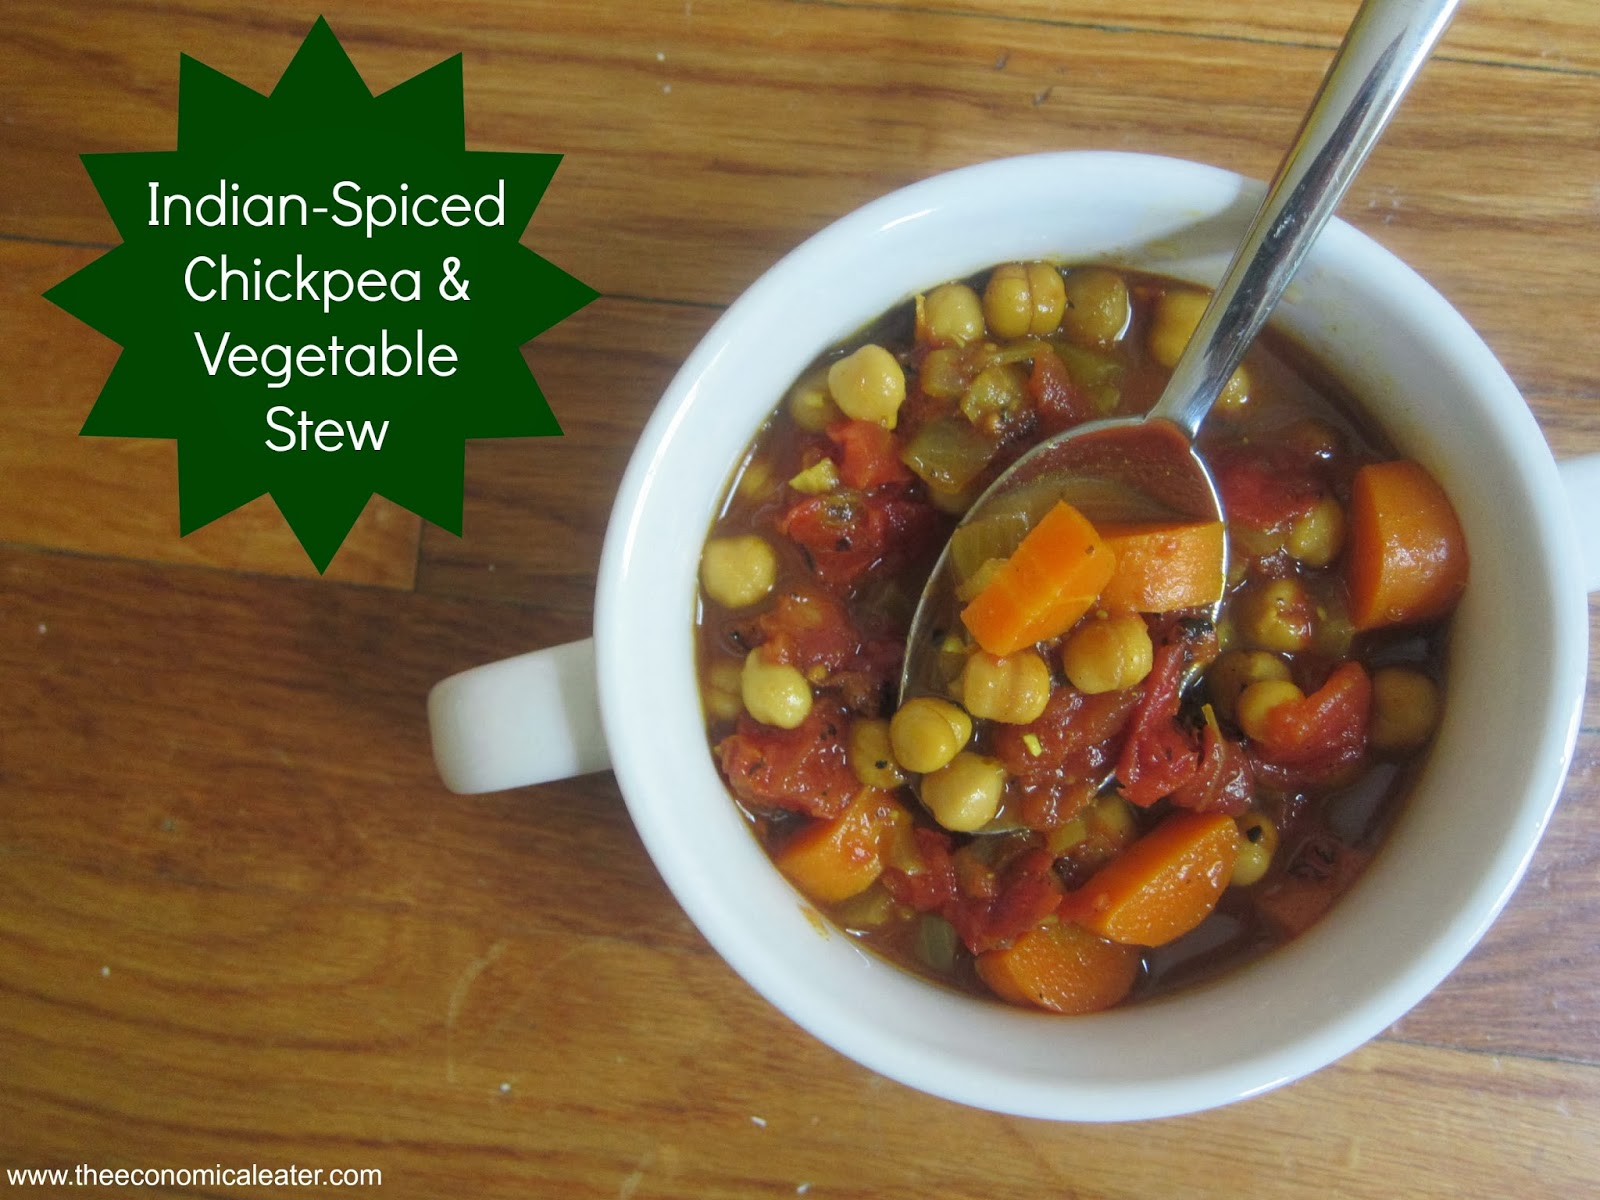 Indian-Spiced Chickpea & Vegetable Stew | The Economical Eater